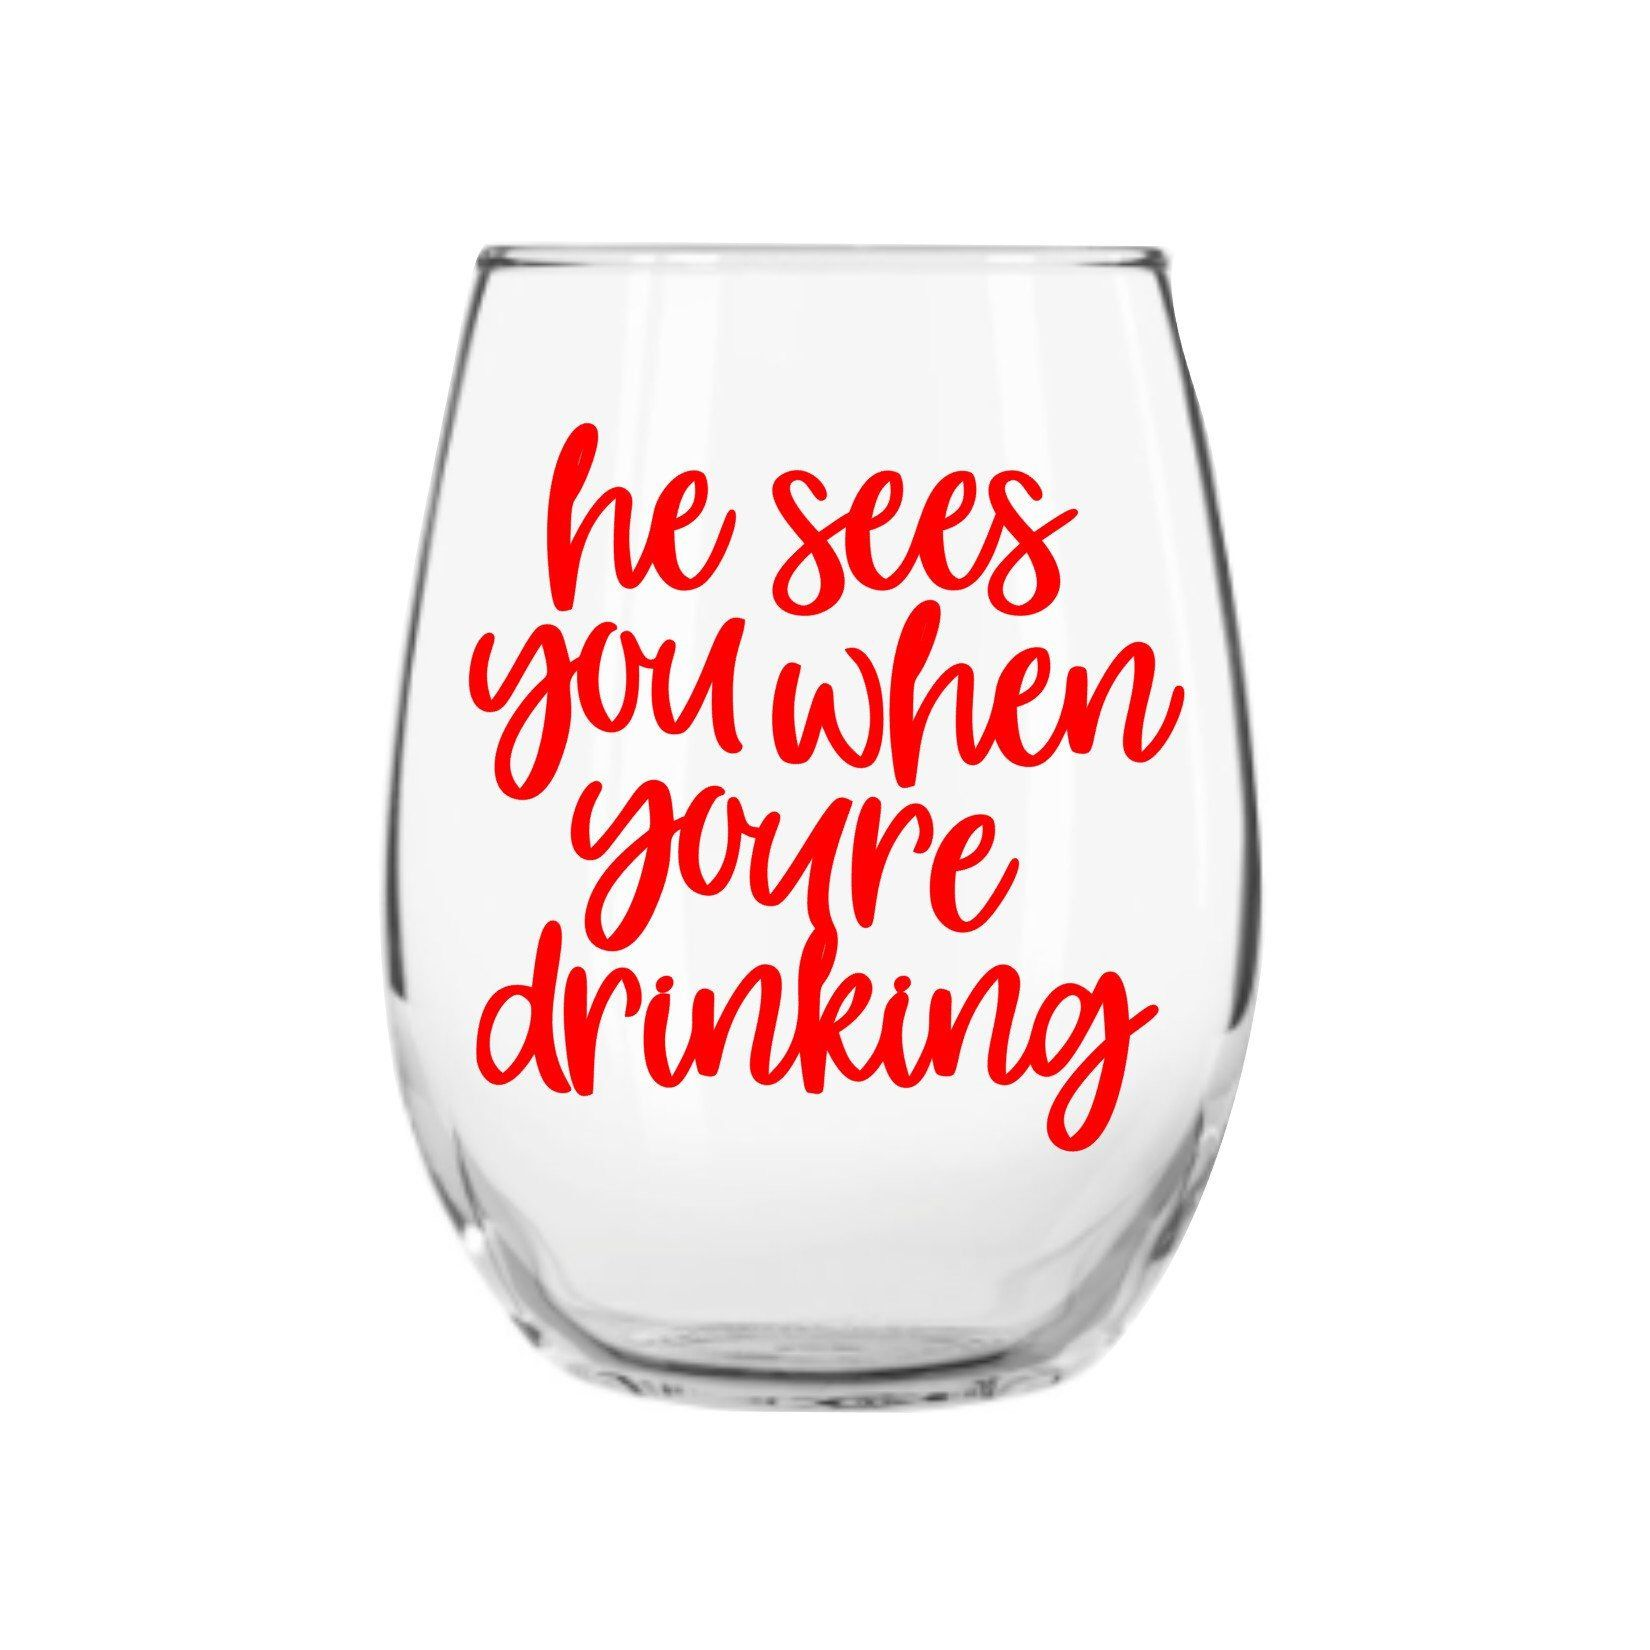 Christmas Wine Glass Funny Wine Glass Holiday Wine Glasses Secret Santa Gift By Yougotpersonalgifts On Et Funny Wine Glass Holiday Wine Glasses Holiday Wine